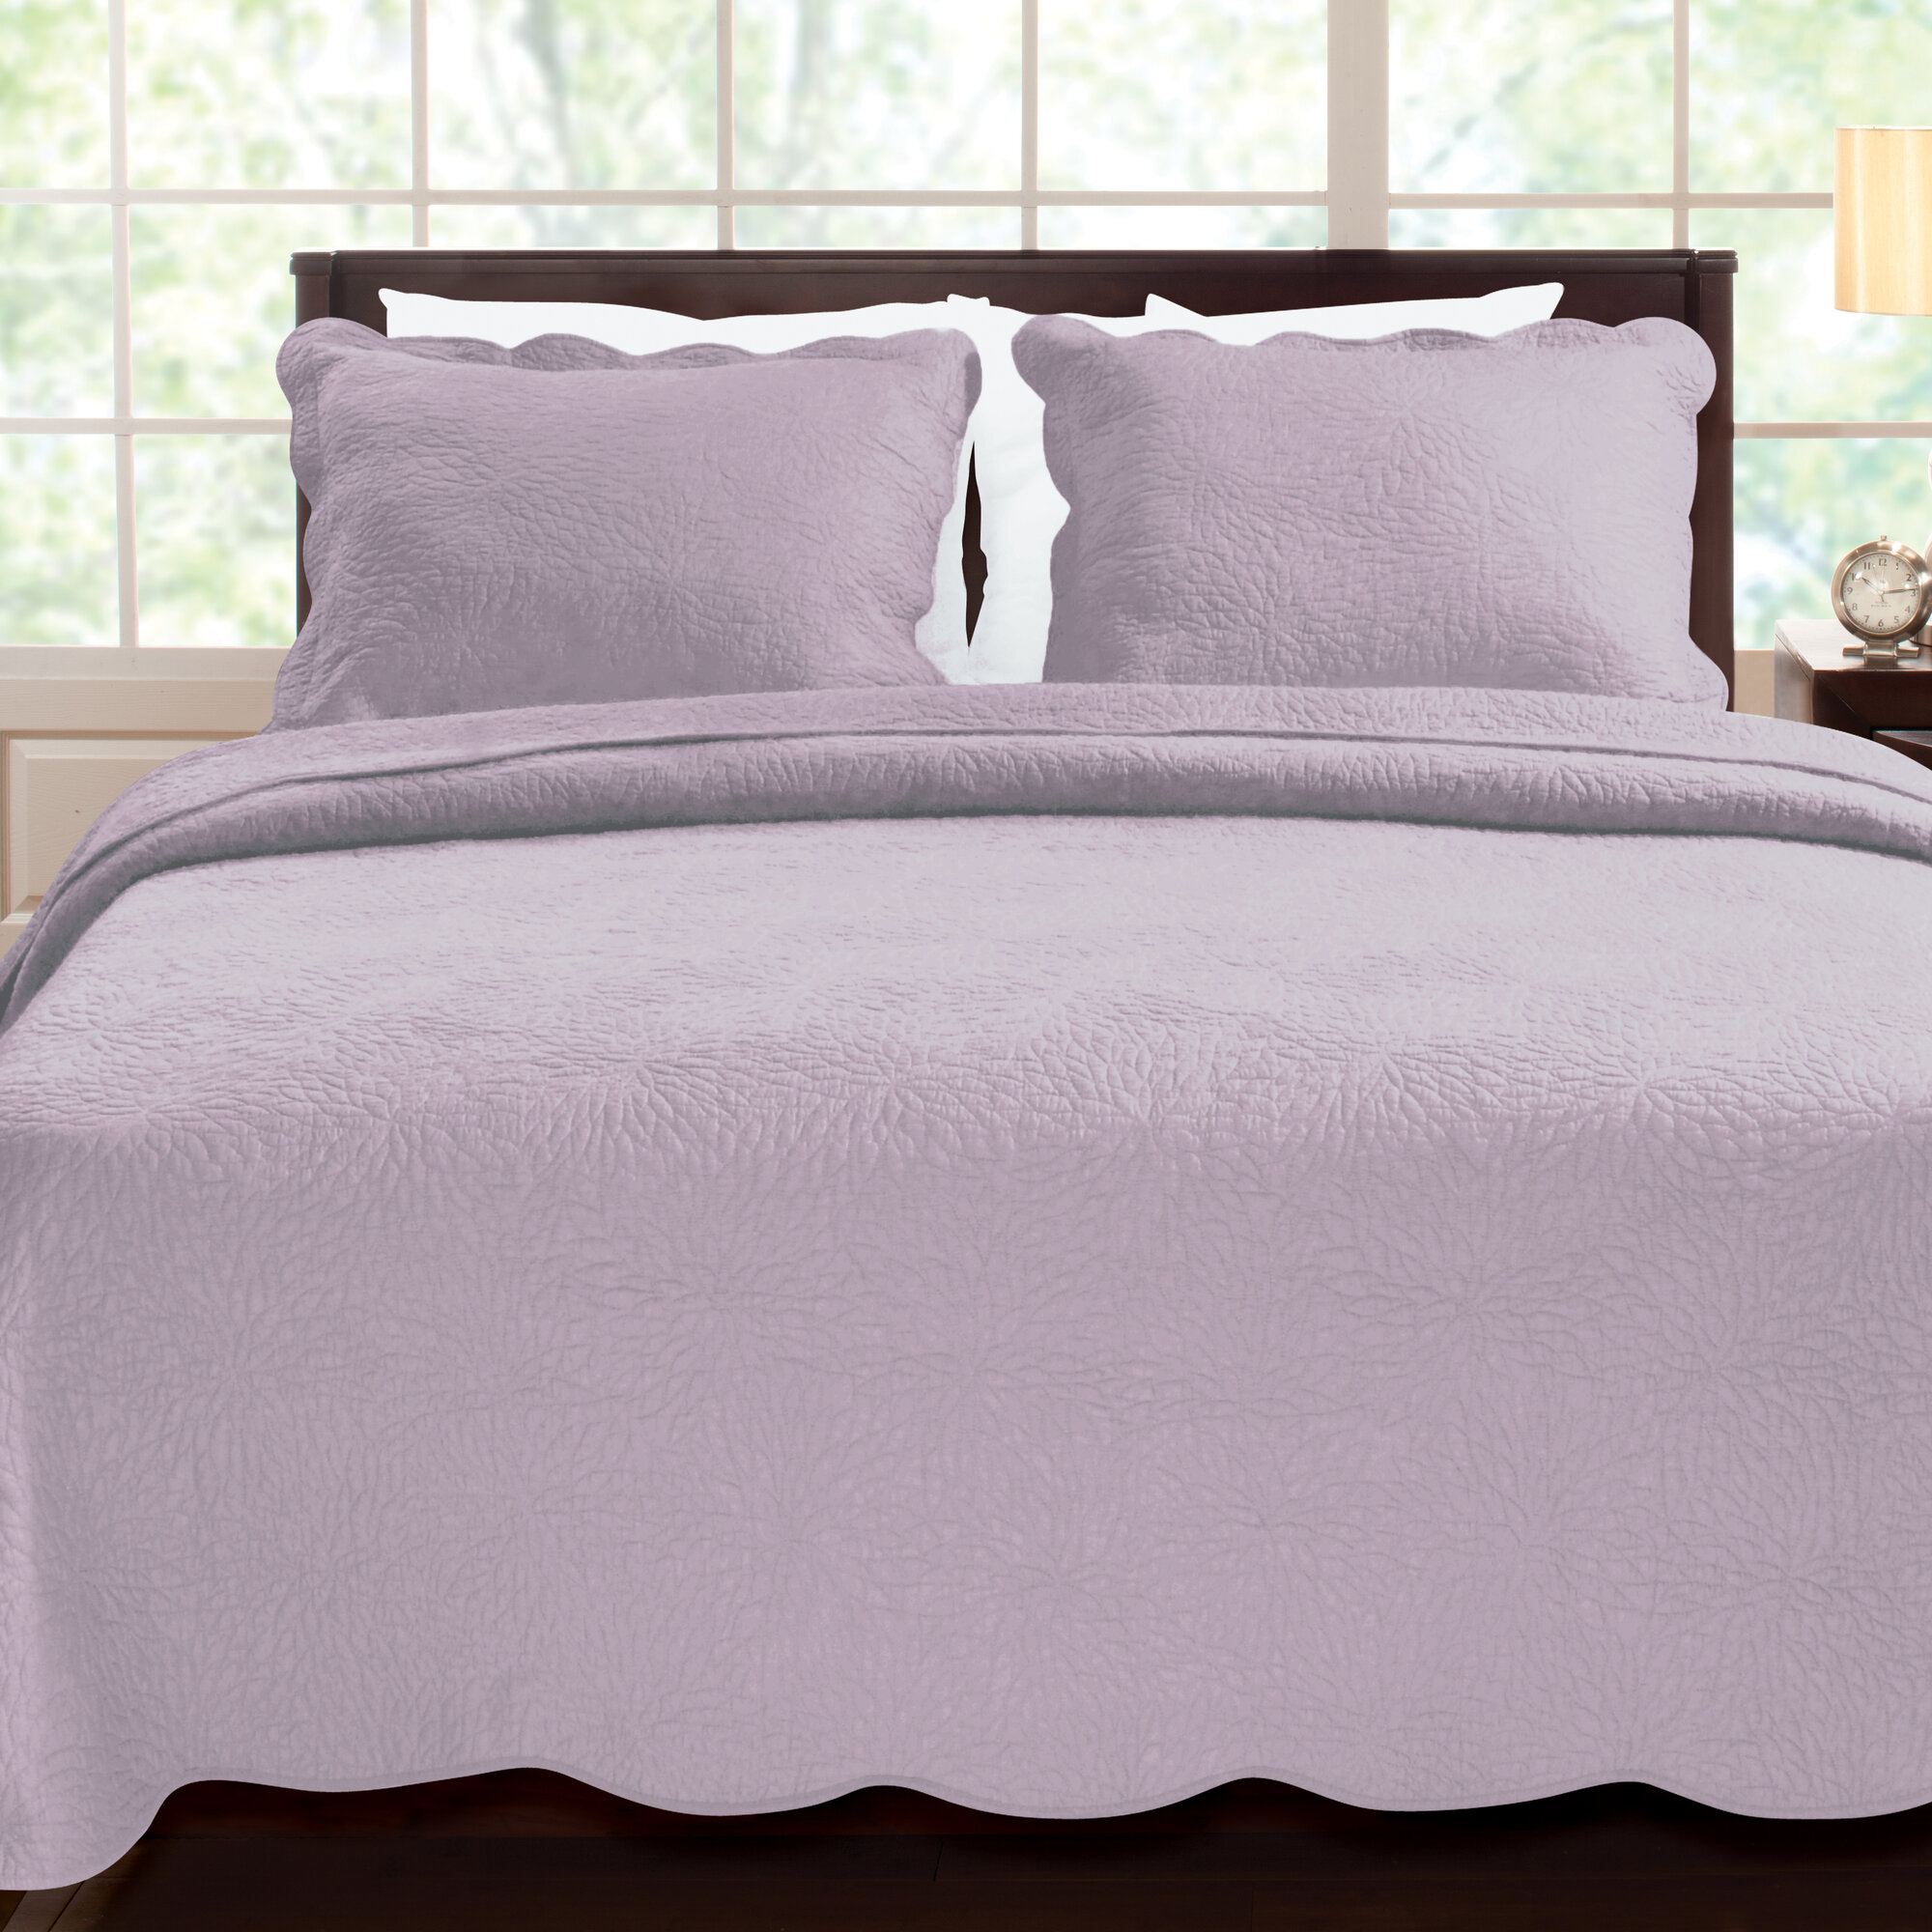 bag in for size comforter plan a twin sets xl bedding plain long bed furniture kids corner set extra purple comforters queen